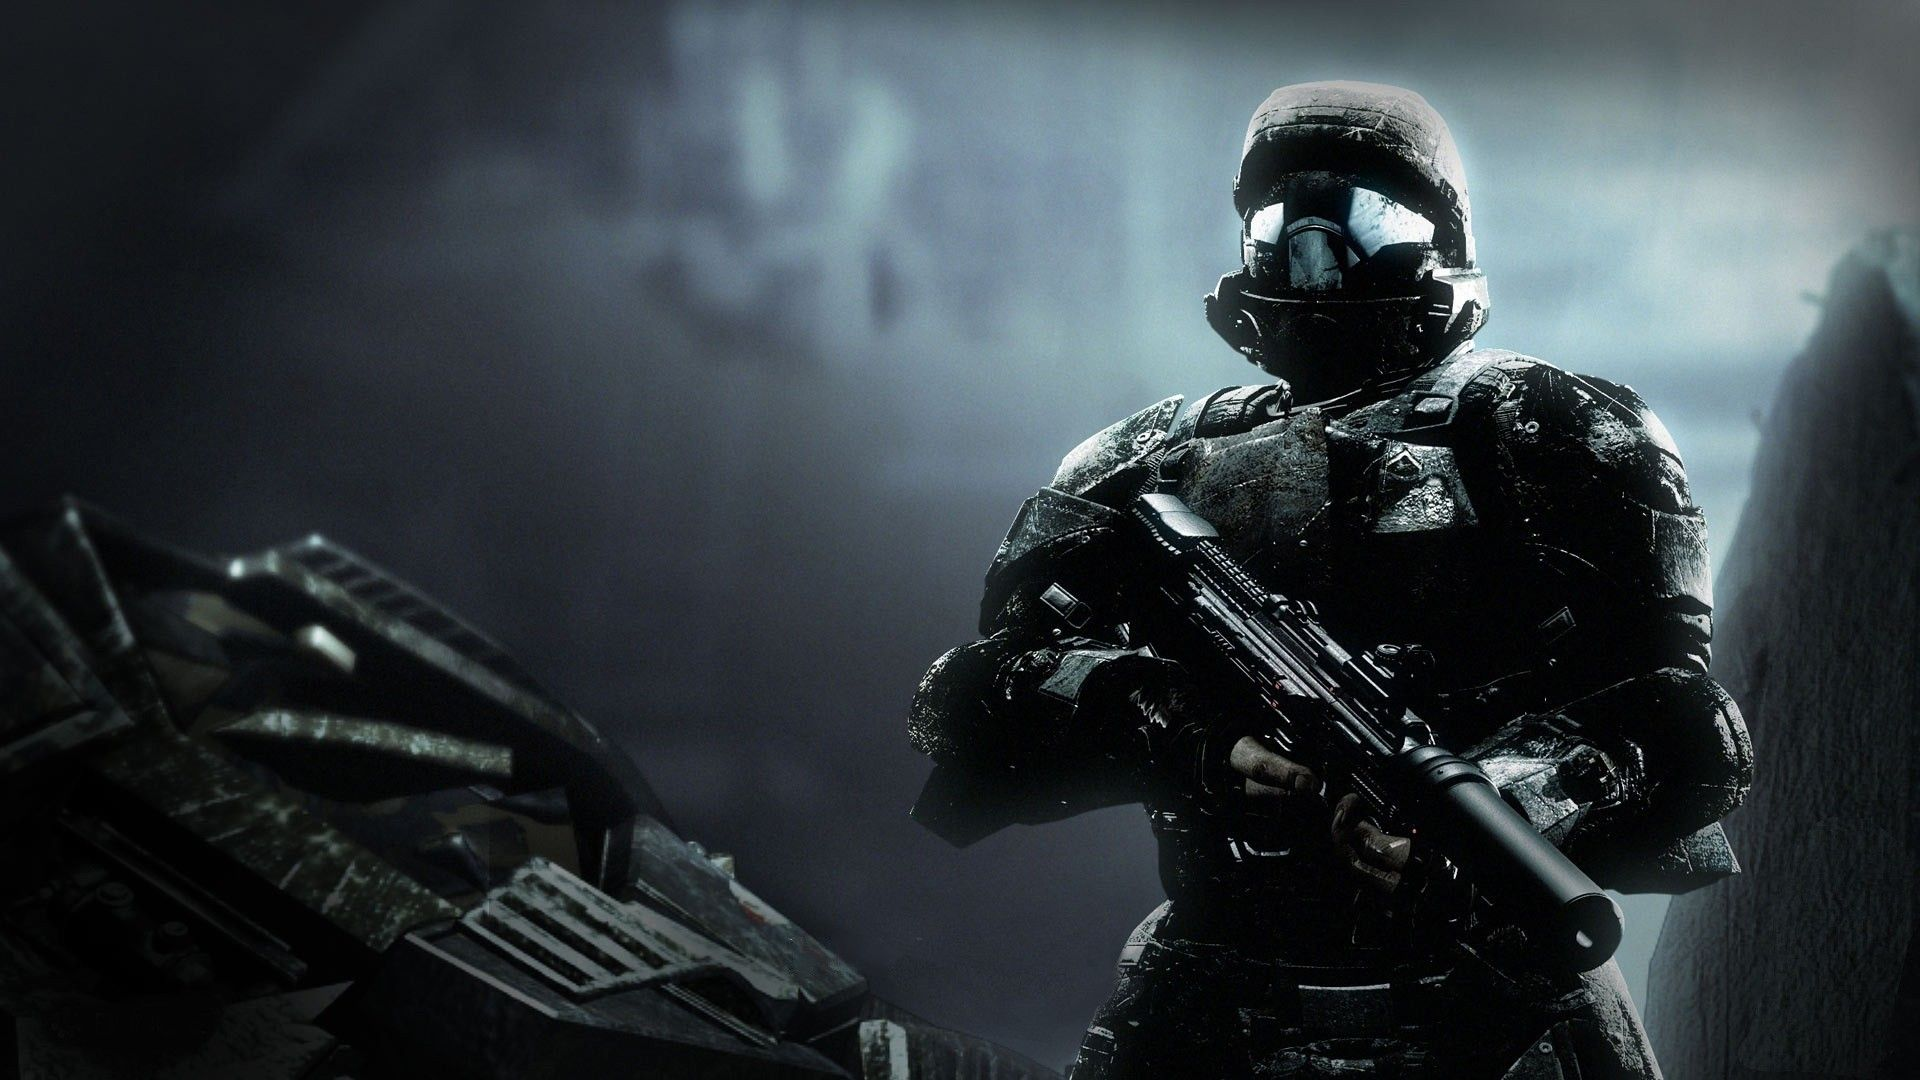 Wallpapers Soldiers Weapon In The Game Halo Odst